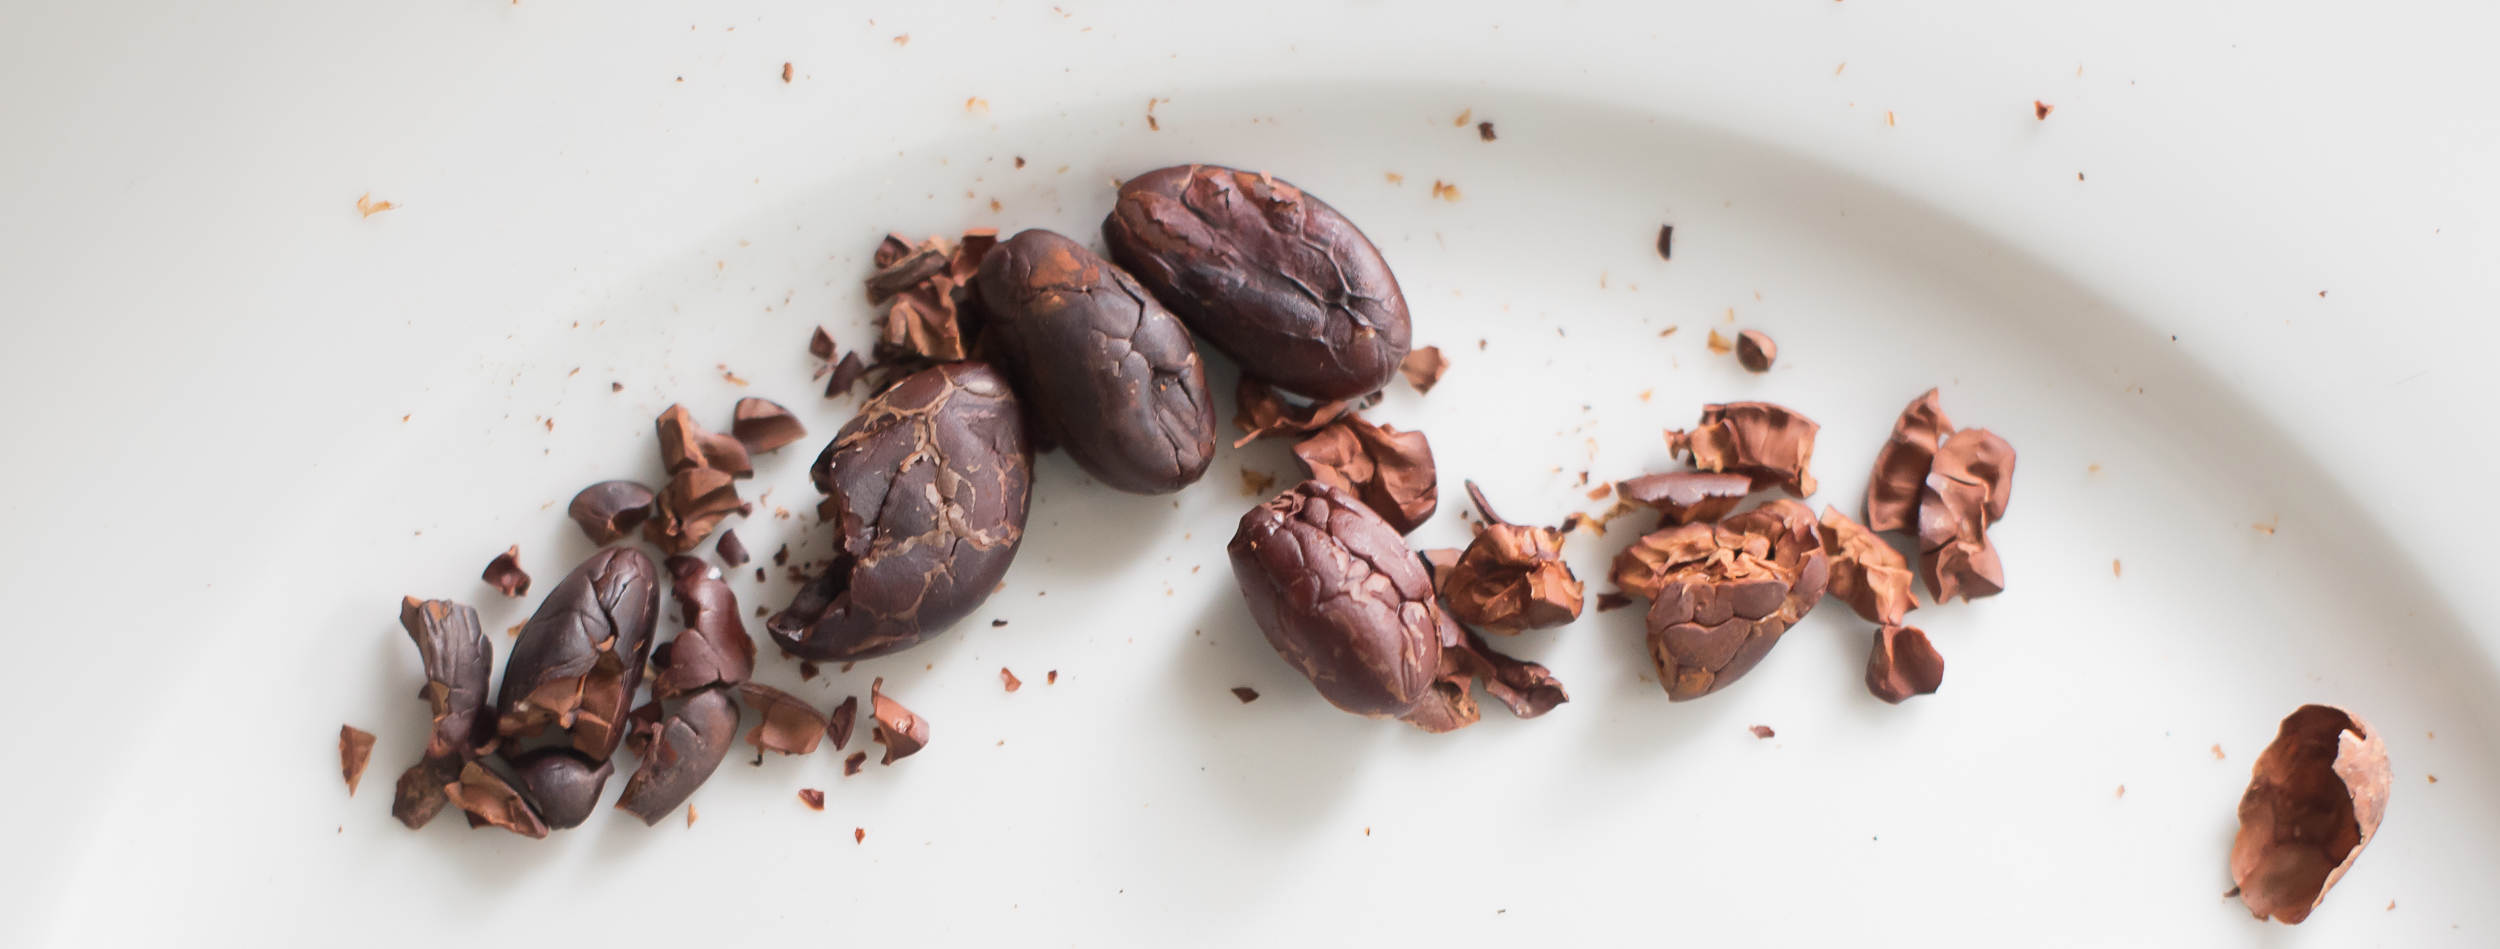 Roasted and hulled cocoa beans, ready to grind into pure delicious chocolate.